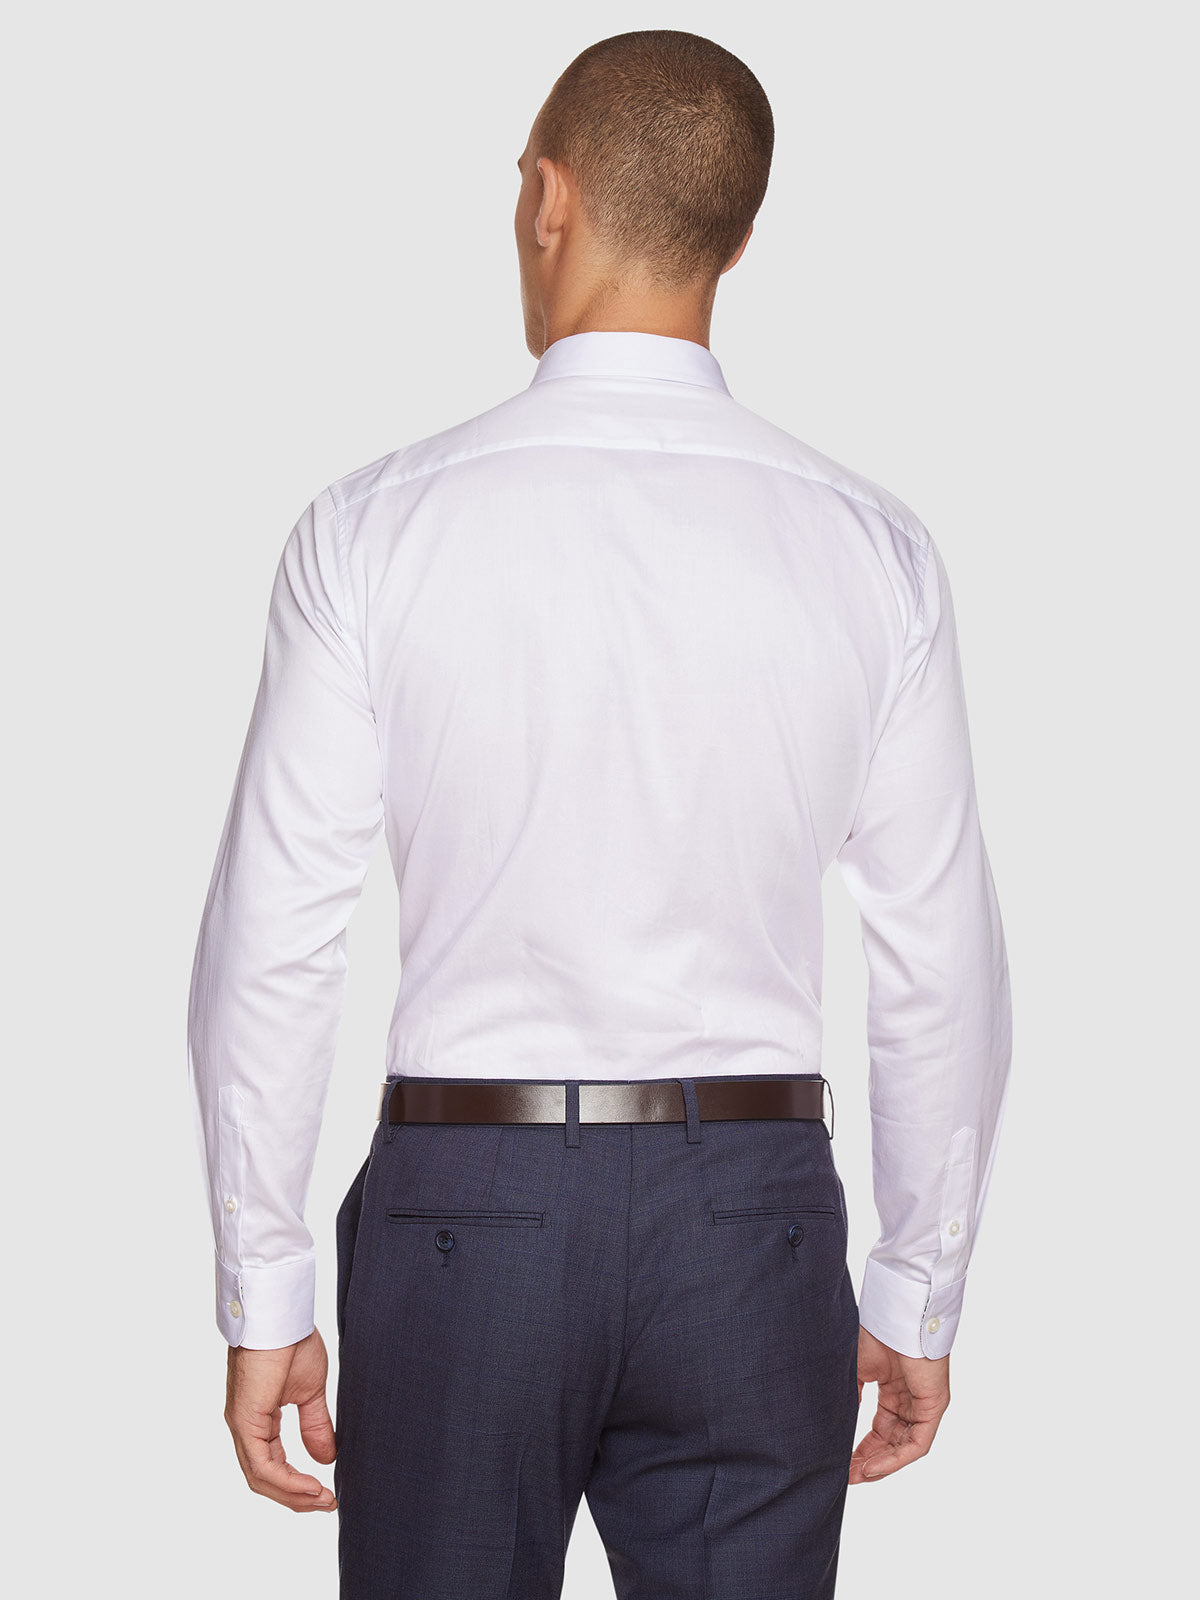 ISLINGTON WHITE SHIRT